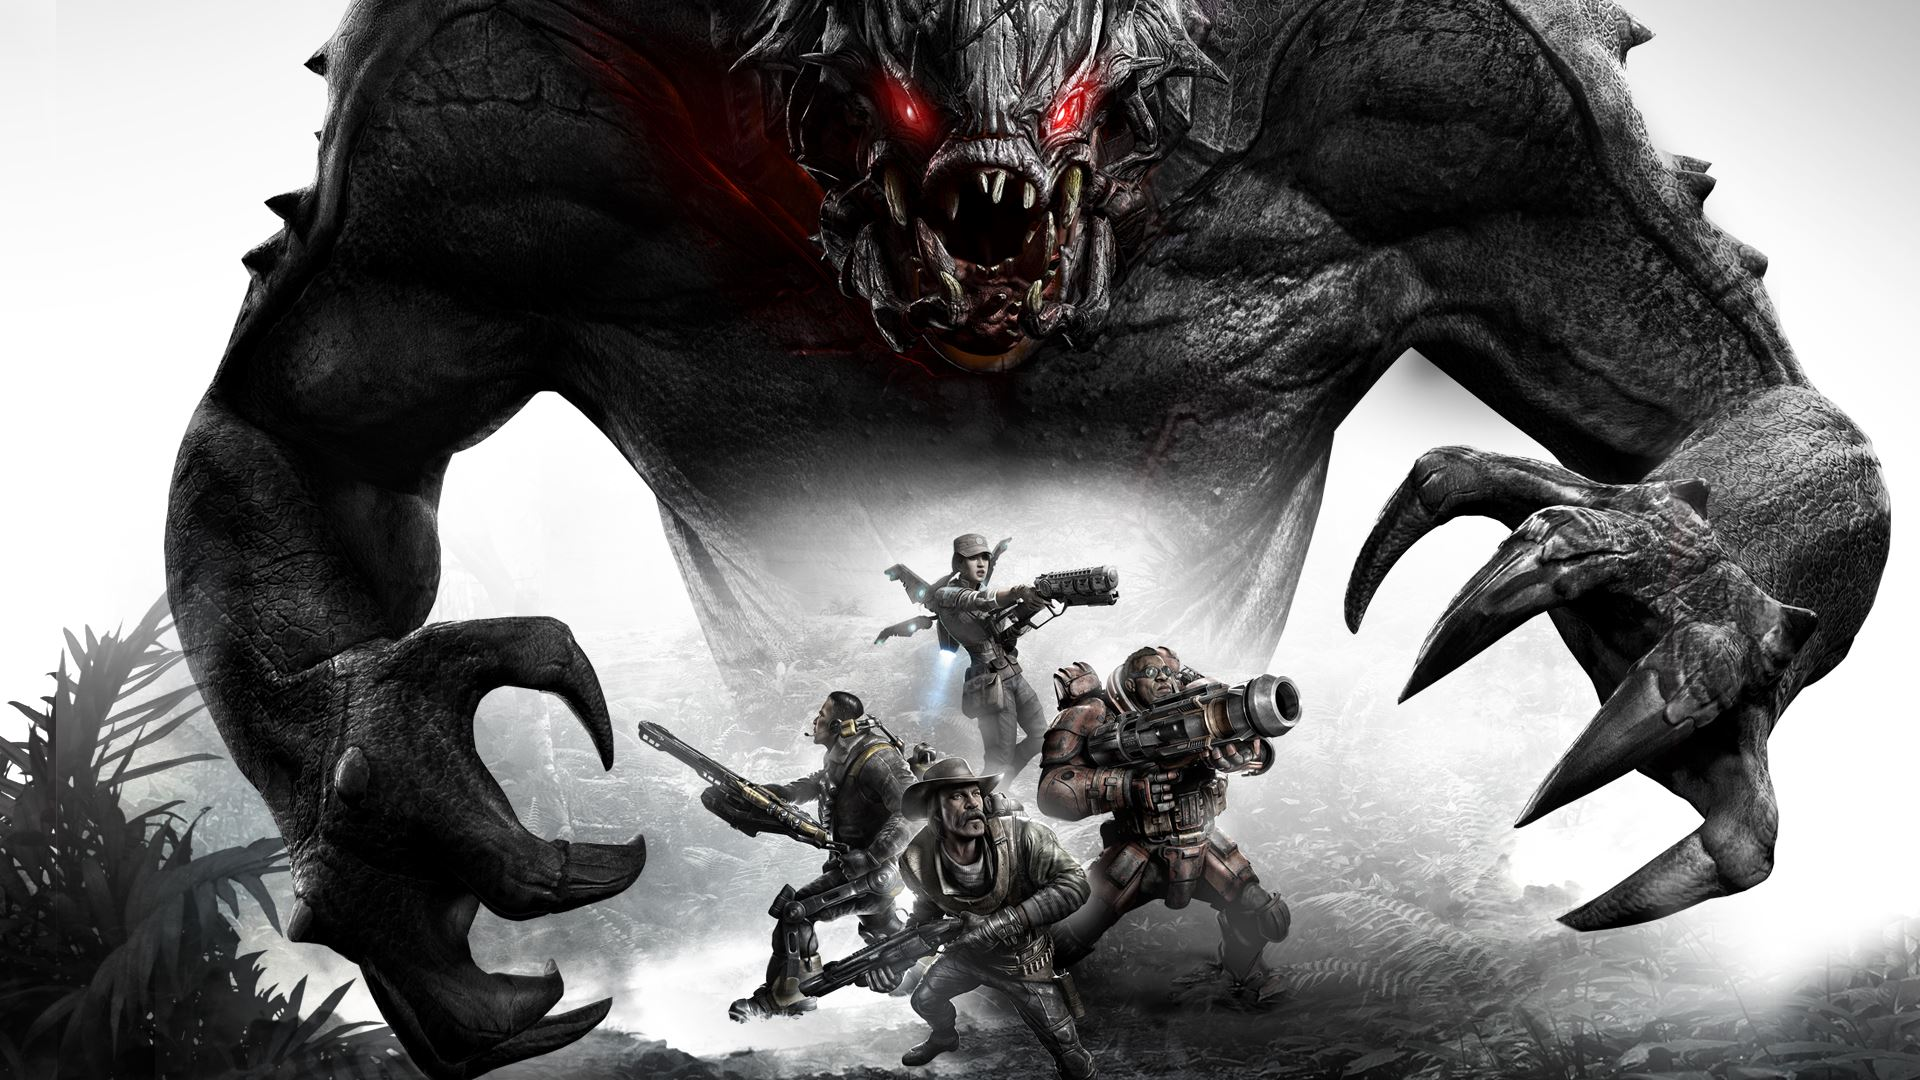 News: Now you can hunt monsters for free in Evolve | MegaGames